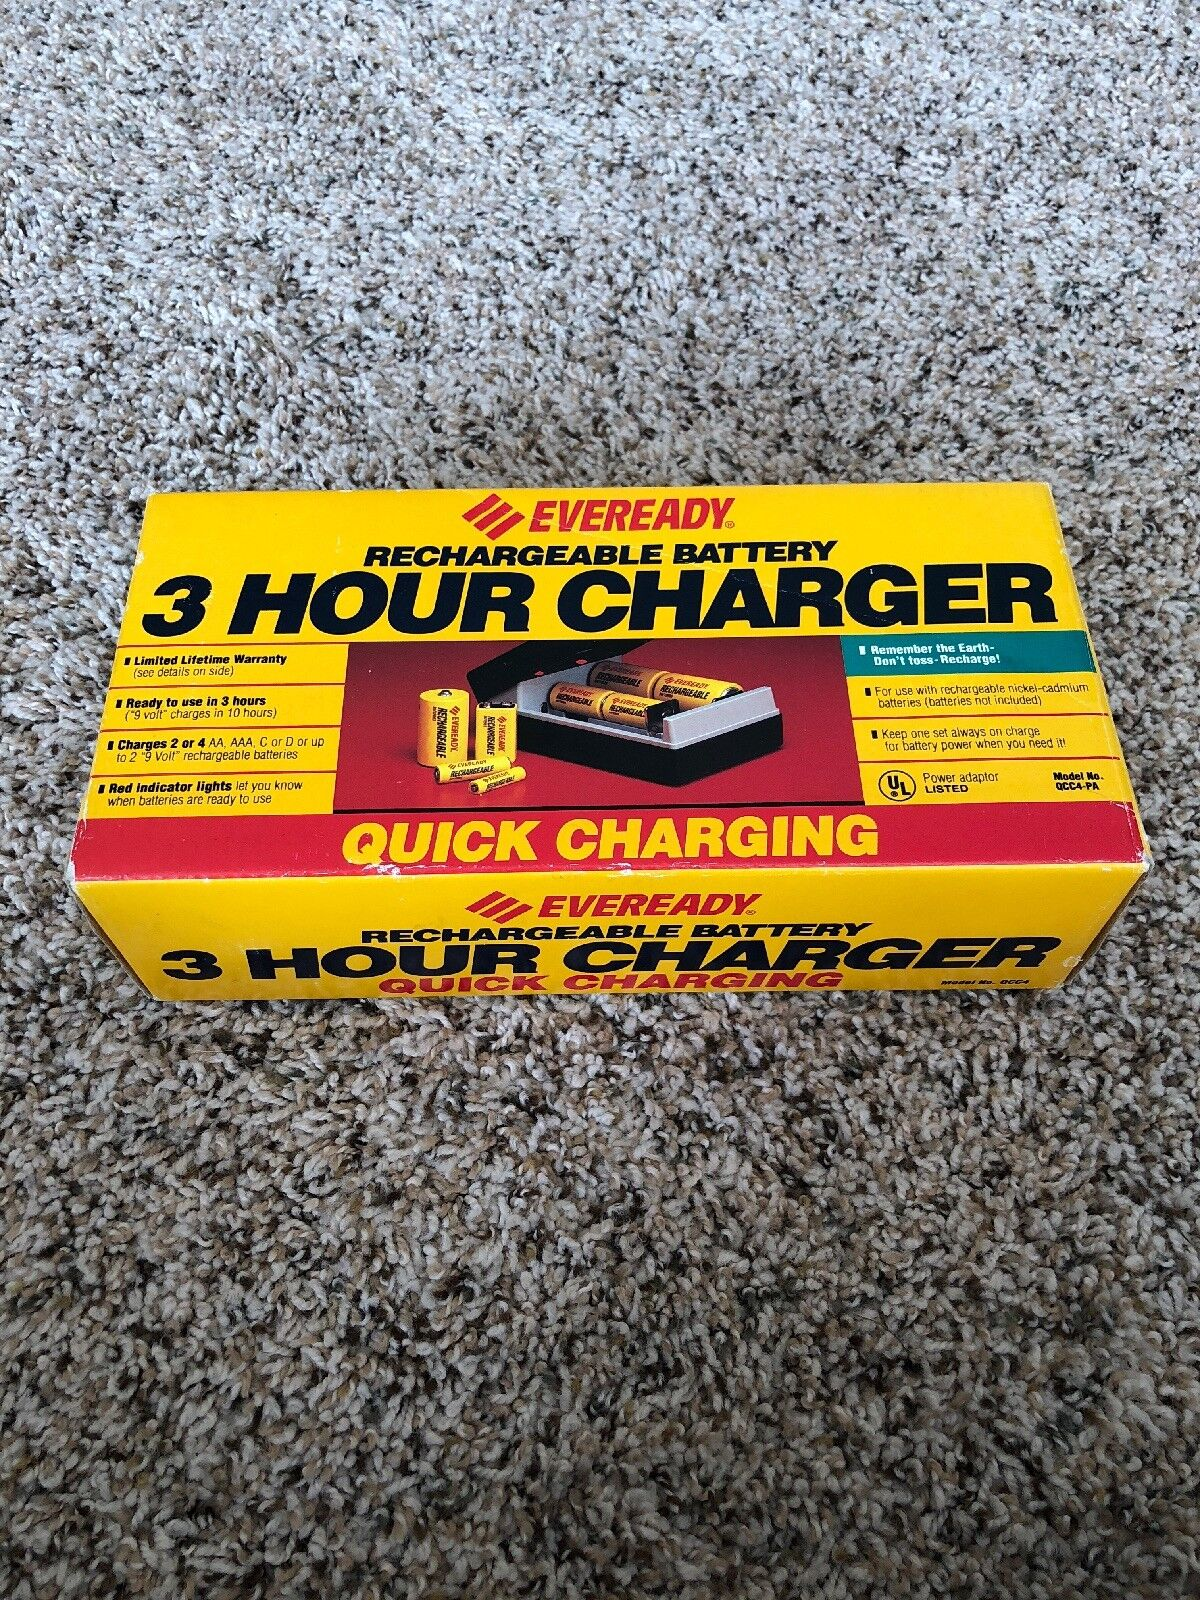 Eveready 3 Hour Charger Rechargeable Battery Quick Charging